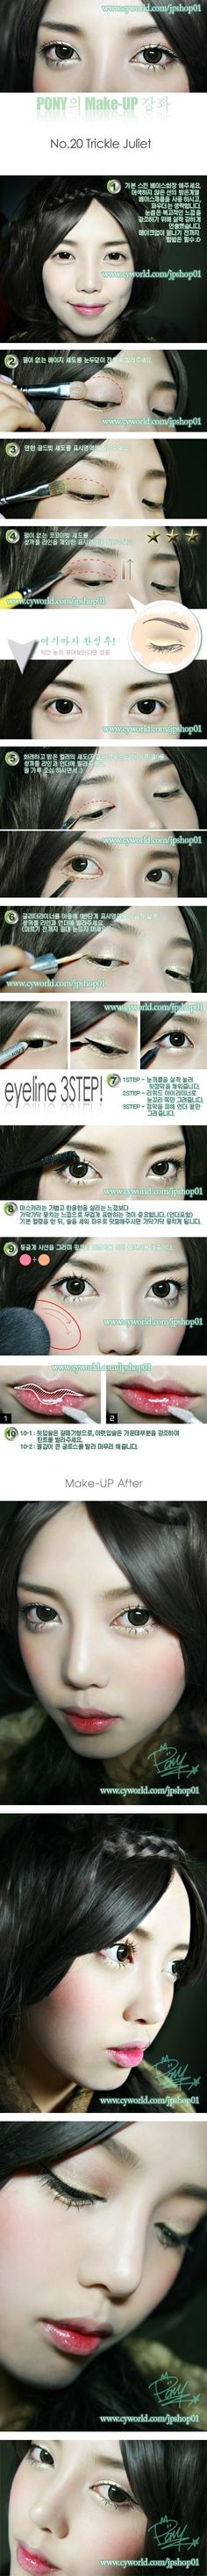 Pony Makeup Tutorial 20 Trickle Juliet, Use Bright Sparkly Colors like Gold or Silver Eye Shadow to OPEN up eyes and make it POP Asian Makeup Tips, Asian Makeup Tutorials, Makeup Ideas, Asian Make Up, Eye Make Up, Pony Makeup, Ulzzang Makeup, Makeup Books, Asian Eyes